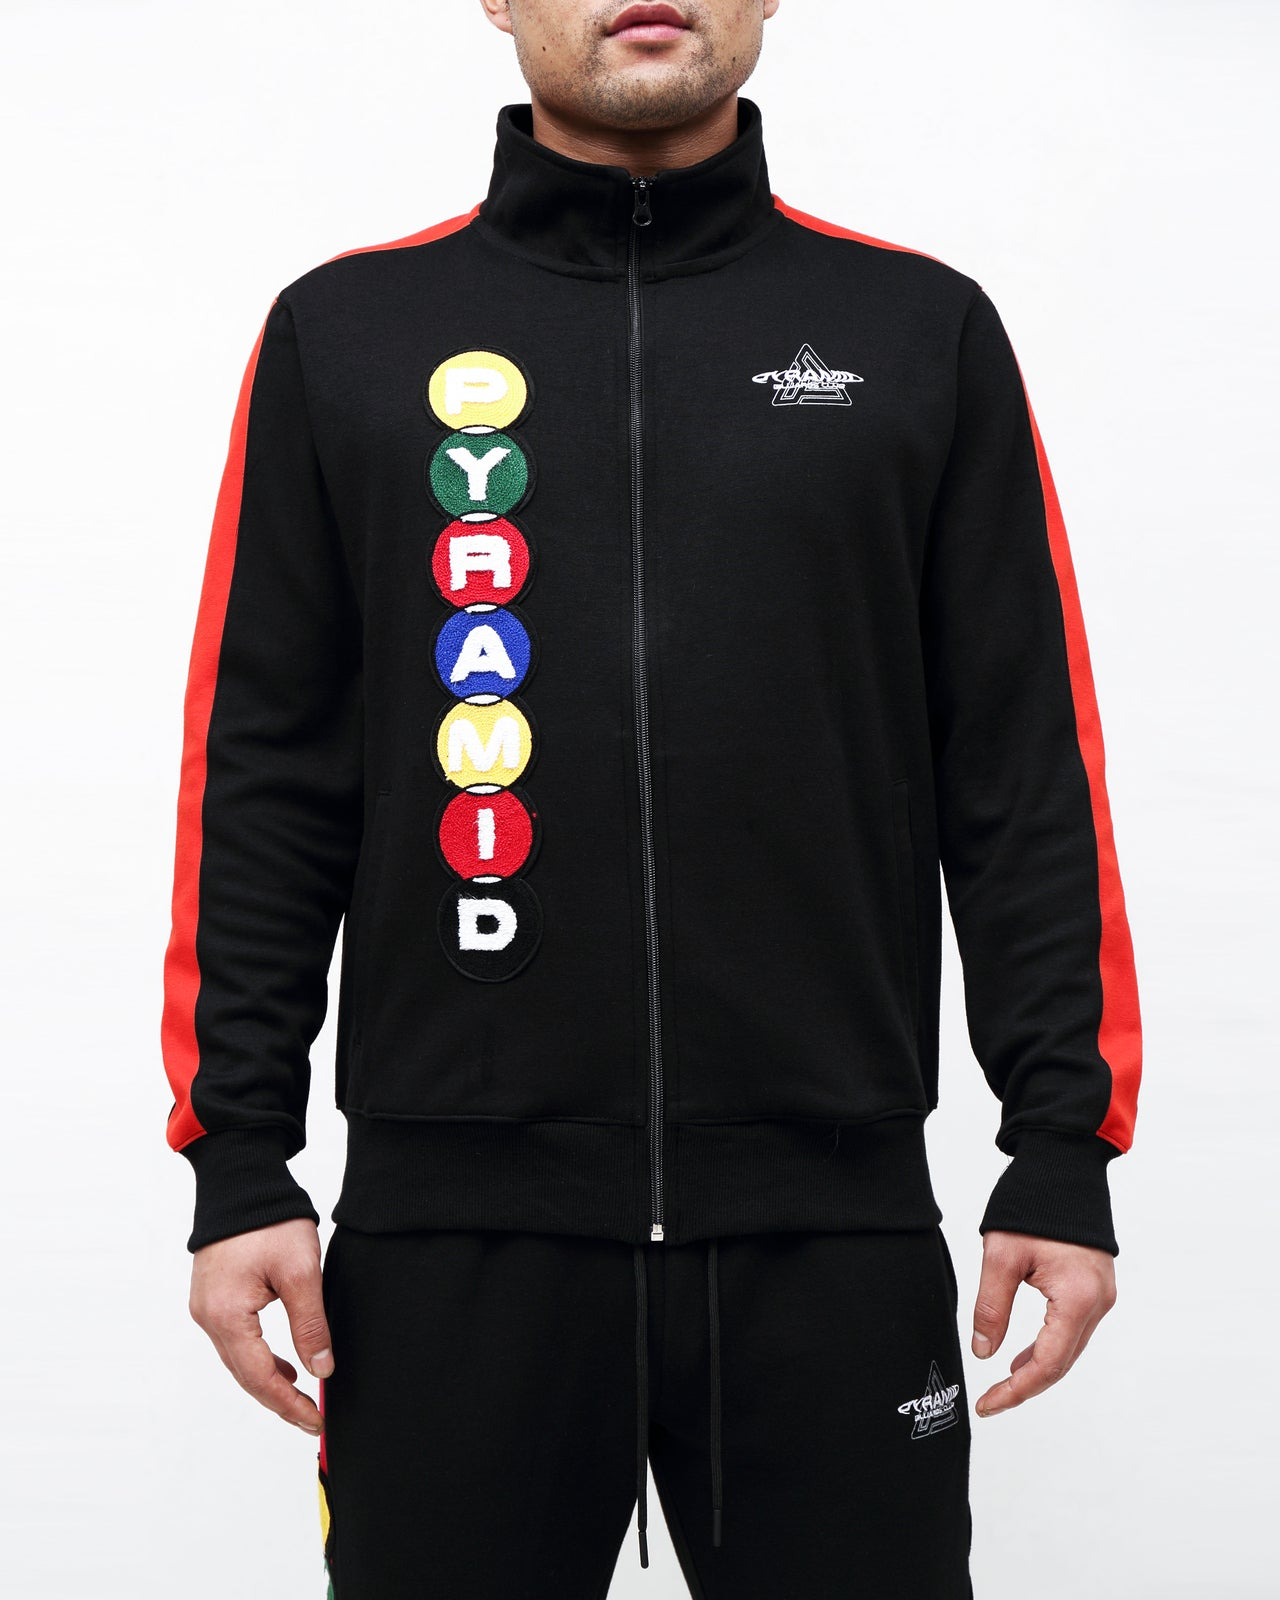 BILLIARD CLUB TRACK JKT- Color: Black